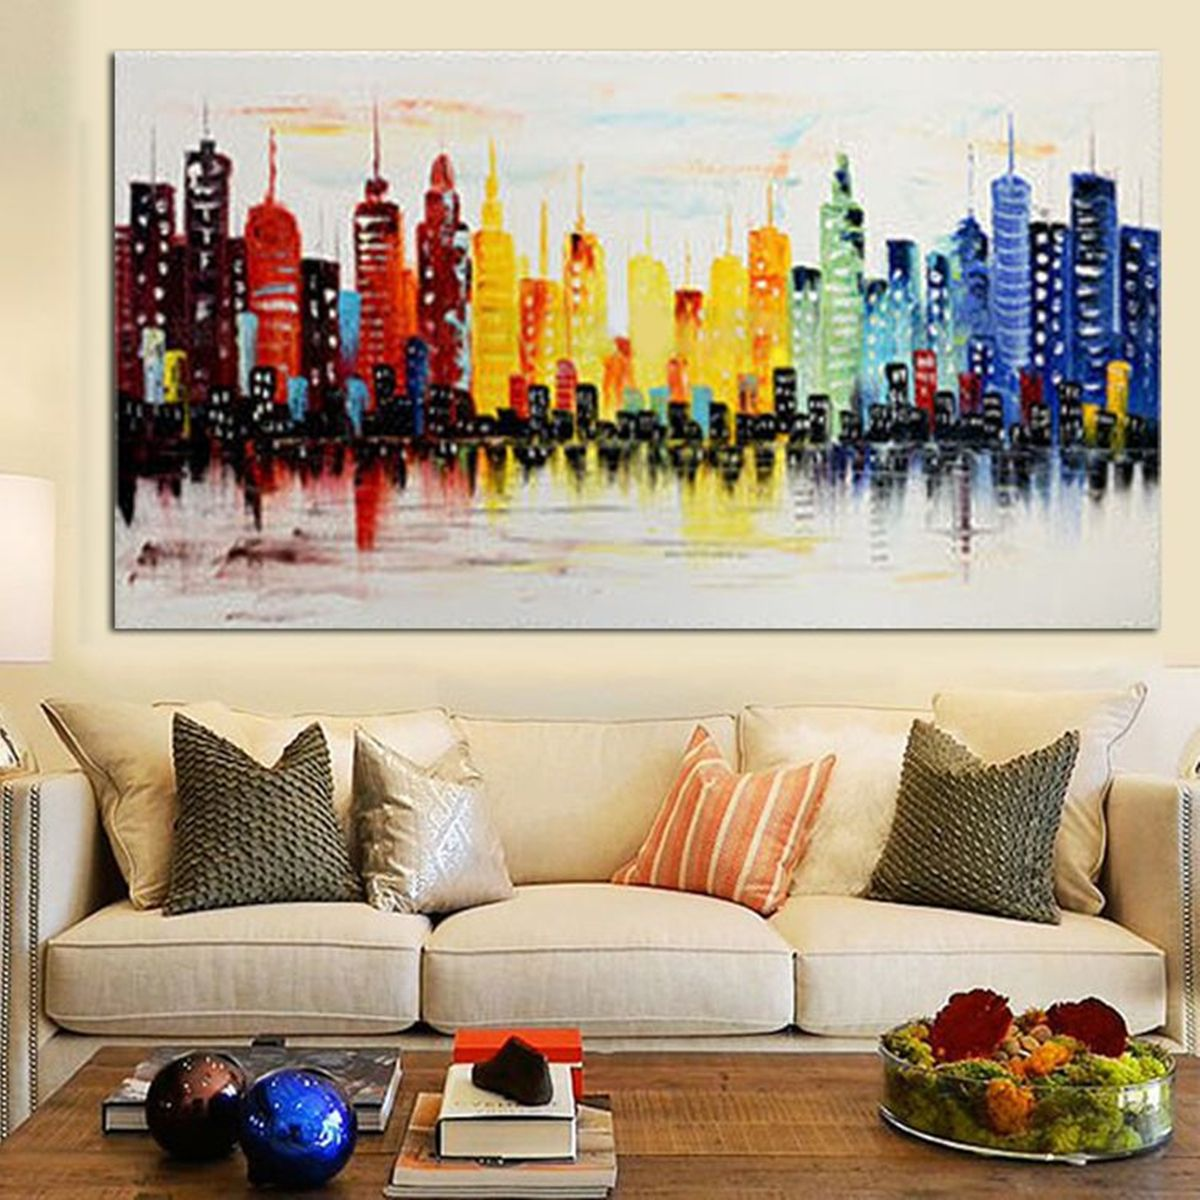 120x60cm Modern City Canvas Abstract Painting Print Living Room Art Wall Decor No Frame Paper Art Home Decor From Home And Garden On Banggood Com Canvas Wall Decor Living Room Art Modern